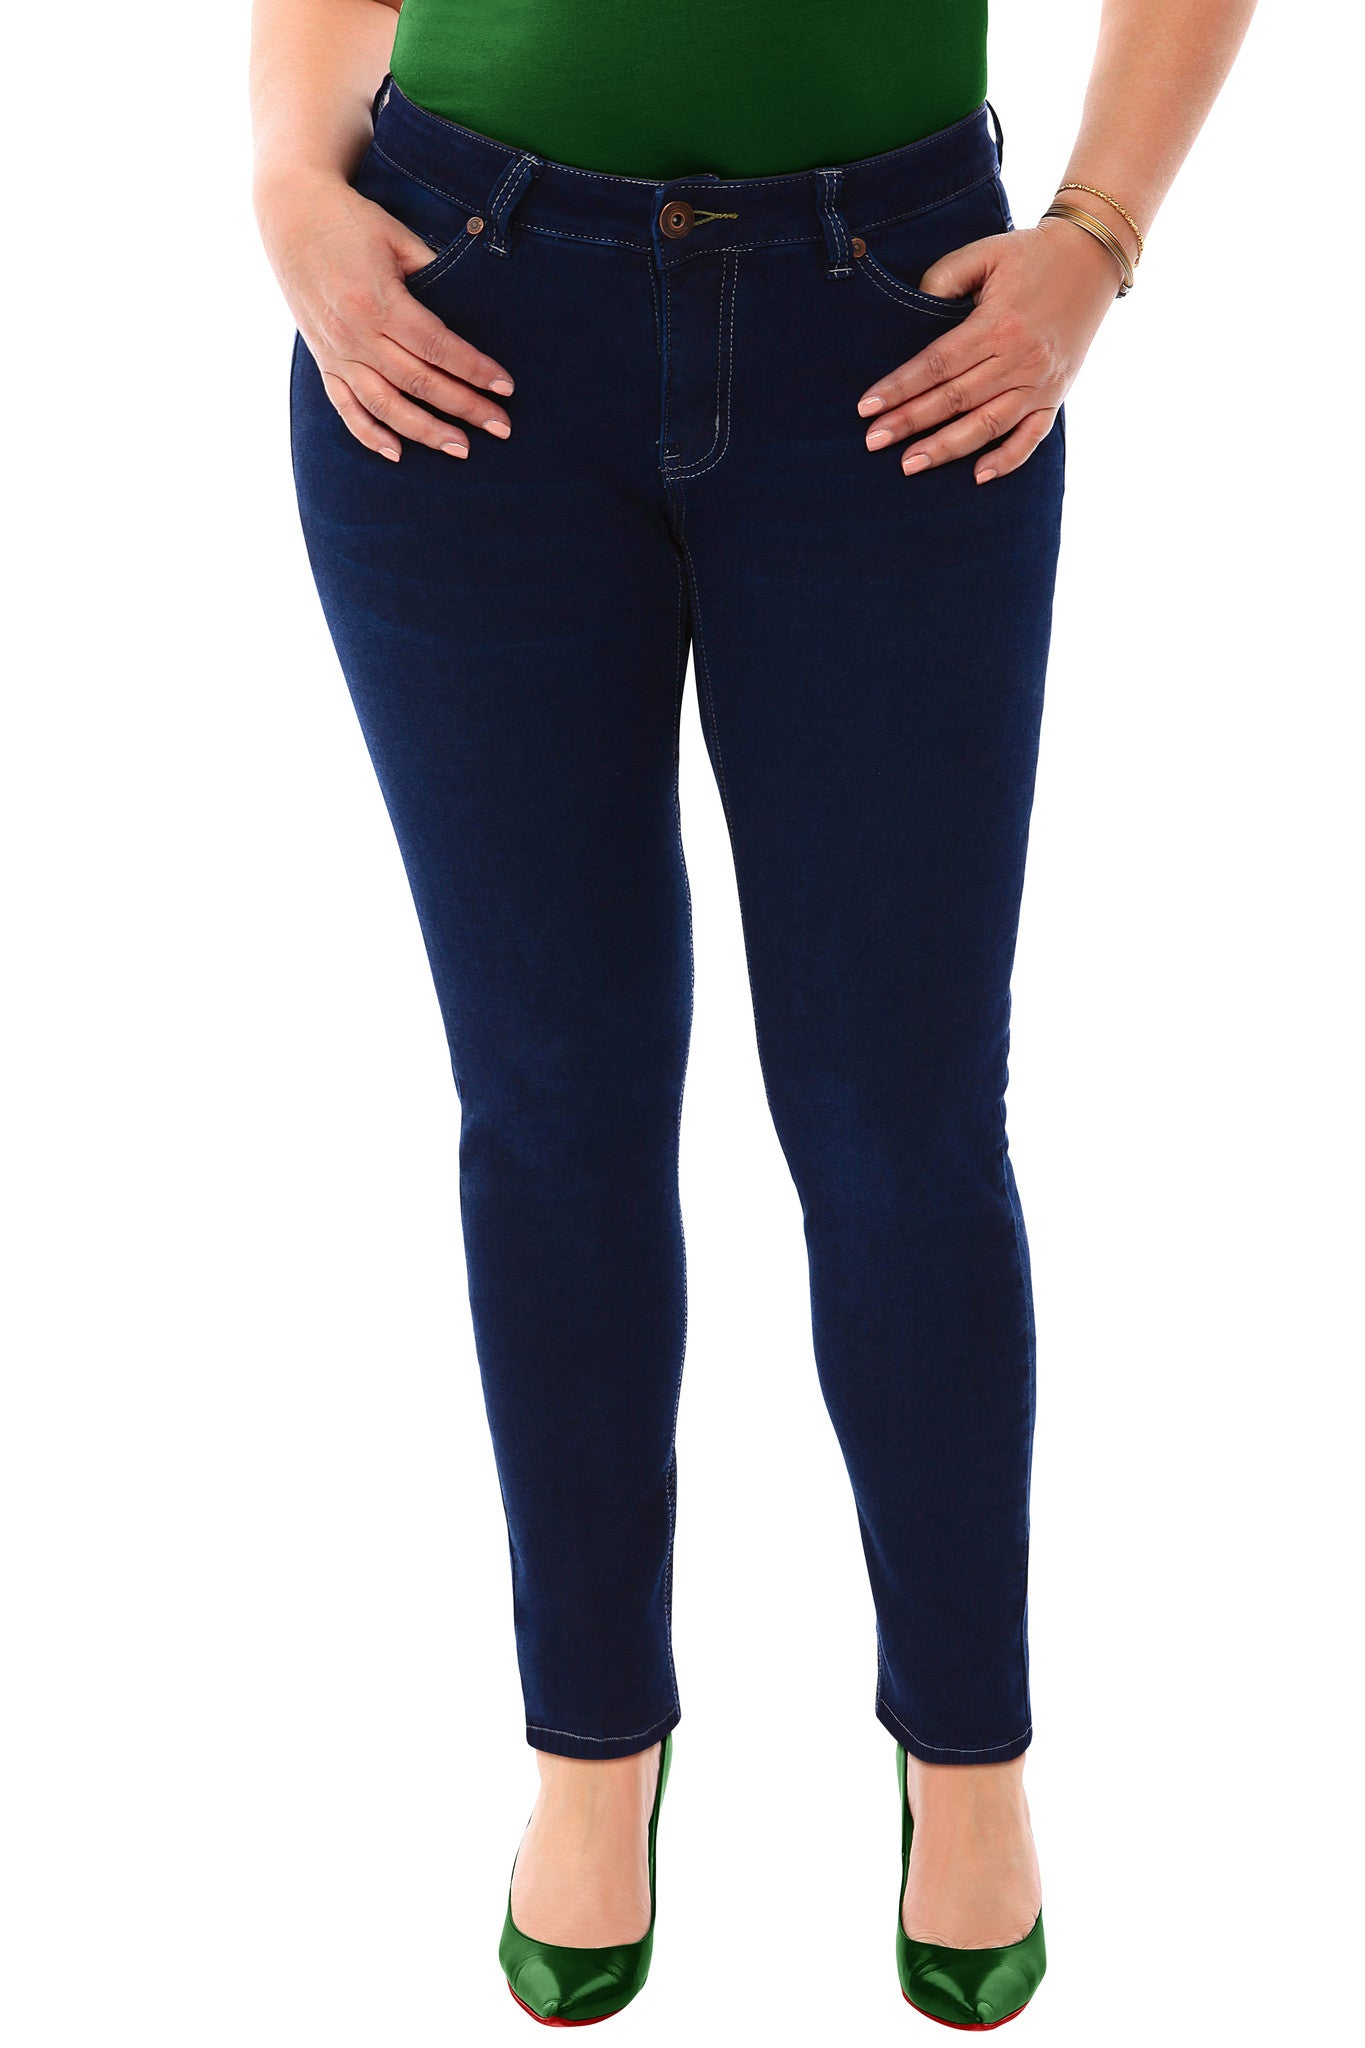 4400a2105ff 360 Stretch Mid Rise Ultra Skinny Denim Jeans (Jeggings) in Blue Depth -  SVOBODA